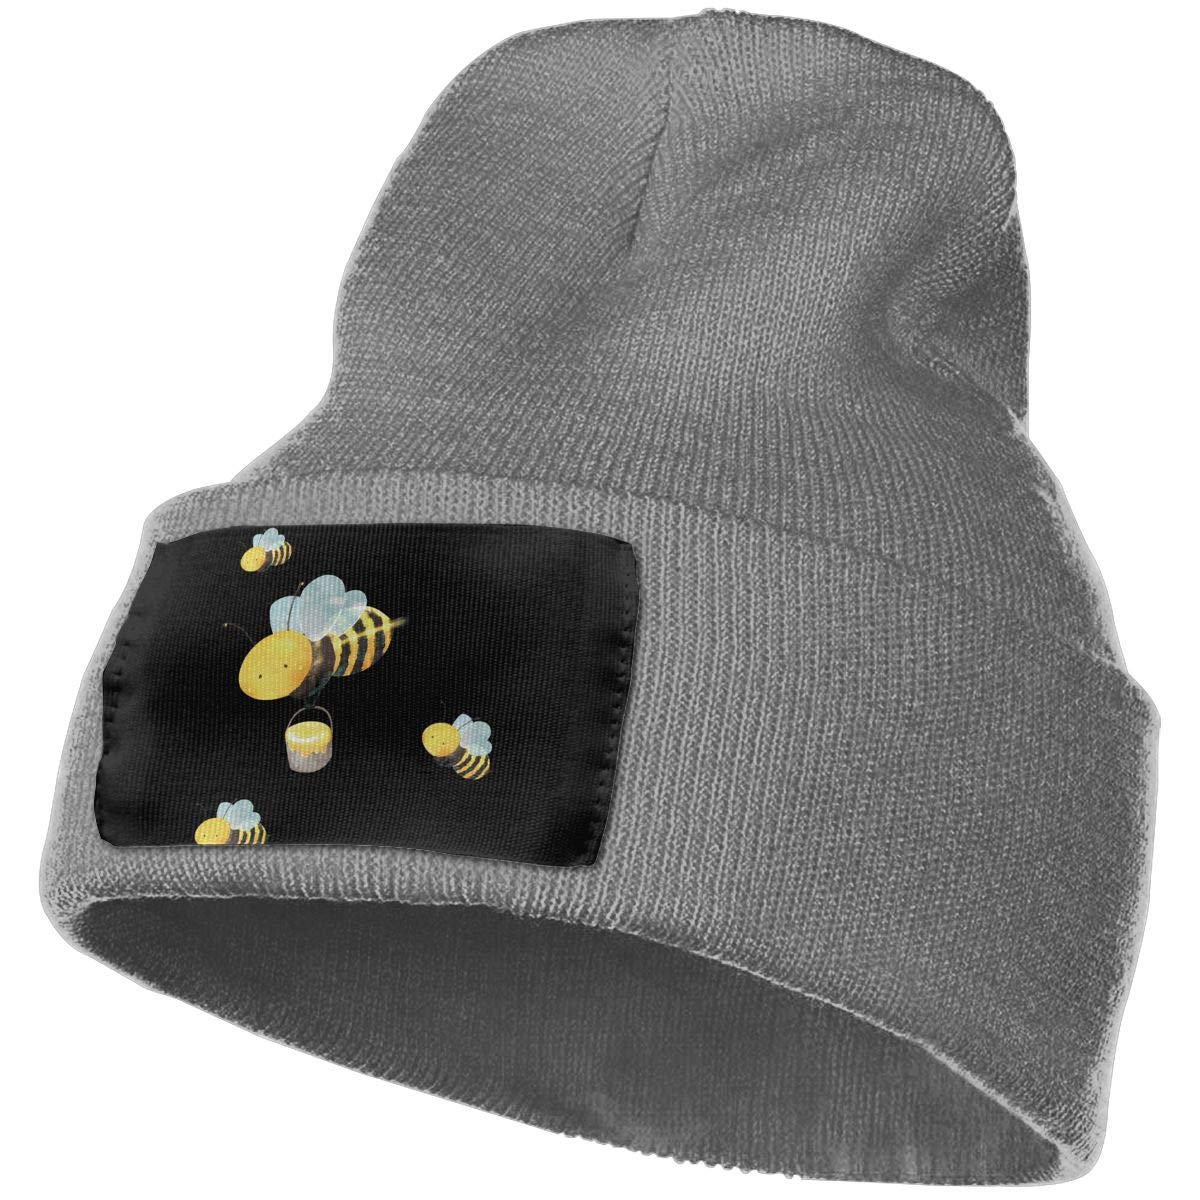 SLADDD1 Bees Warm Winter Hat Knit Beanie Skull Cap Cuff Beanie Hat Winter Hats for Men /& Women